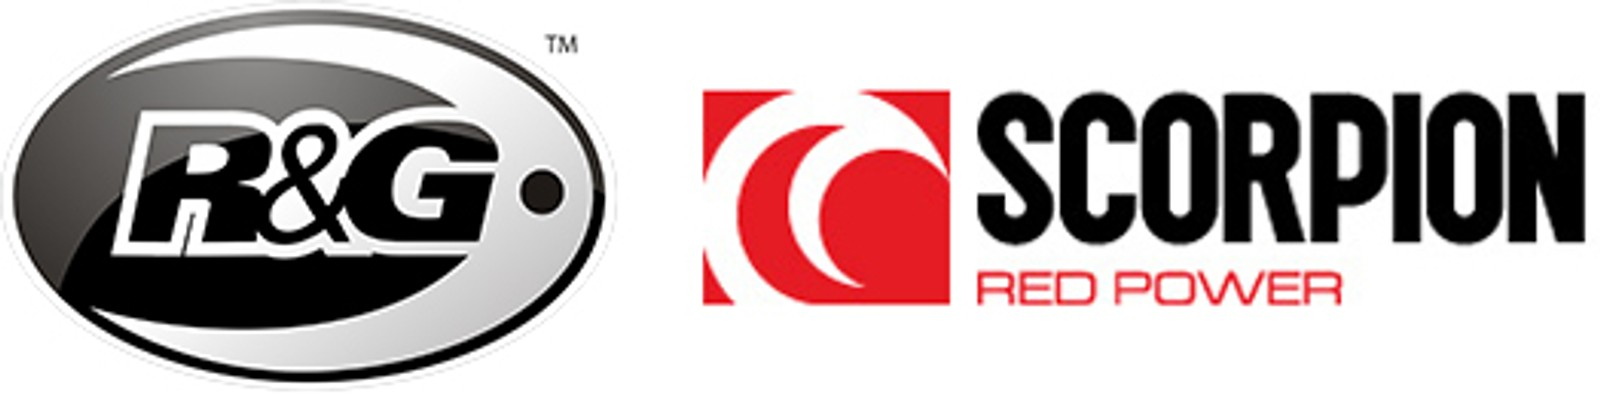 R&g Joins Forces With Scorpion Exhausts To Become Sub Distributor!